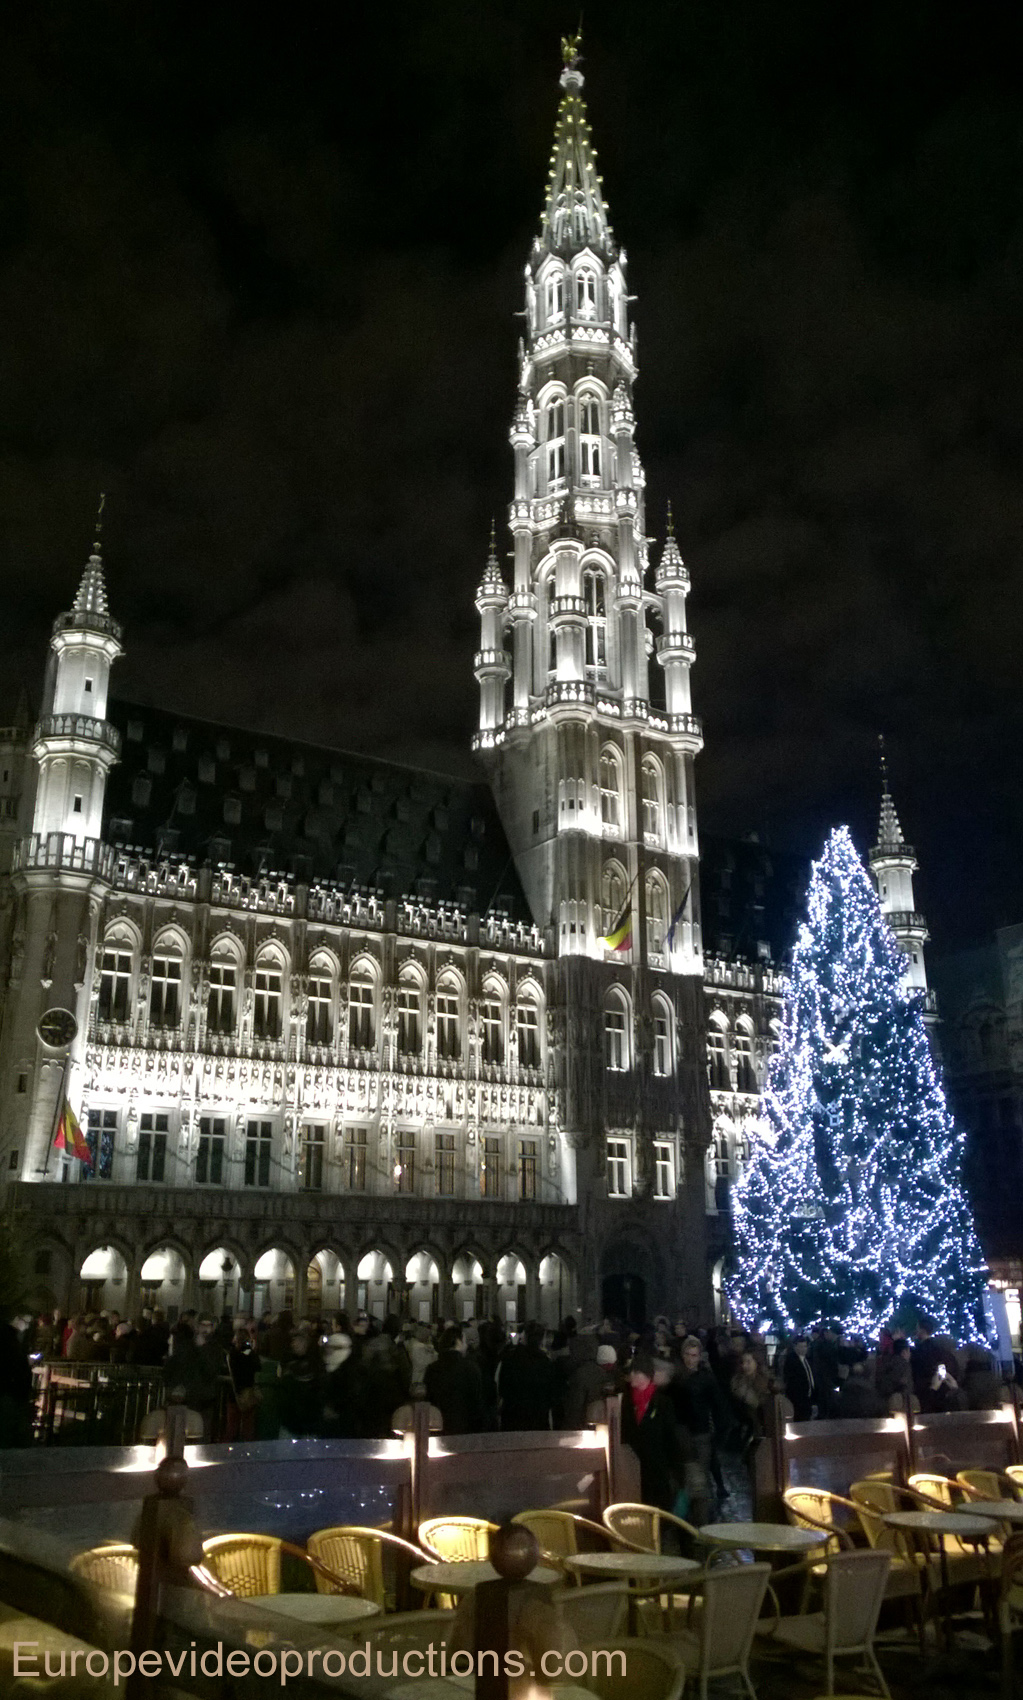 The Grand Place in Brussels, Belgium during Christmas time